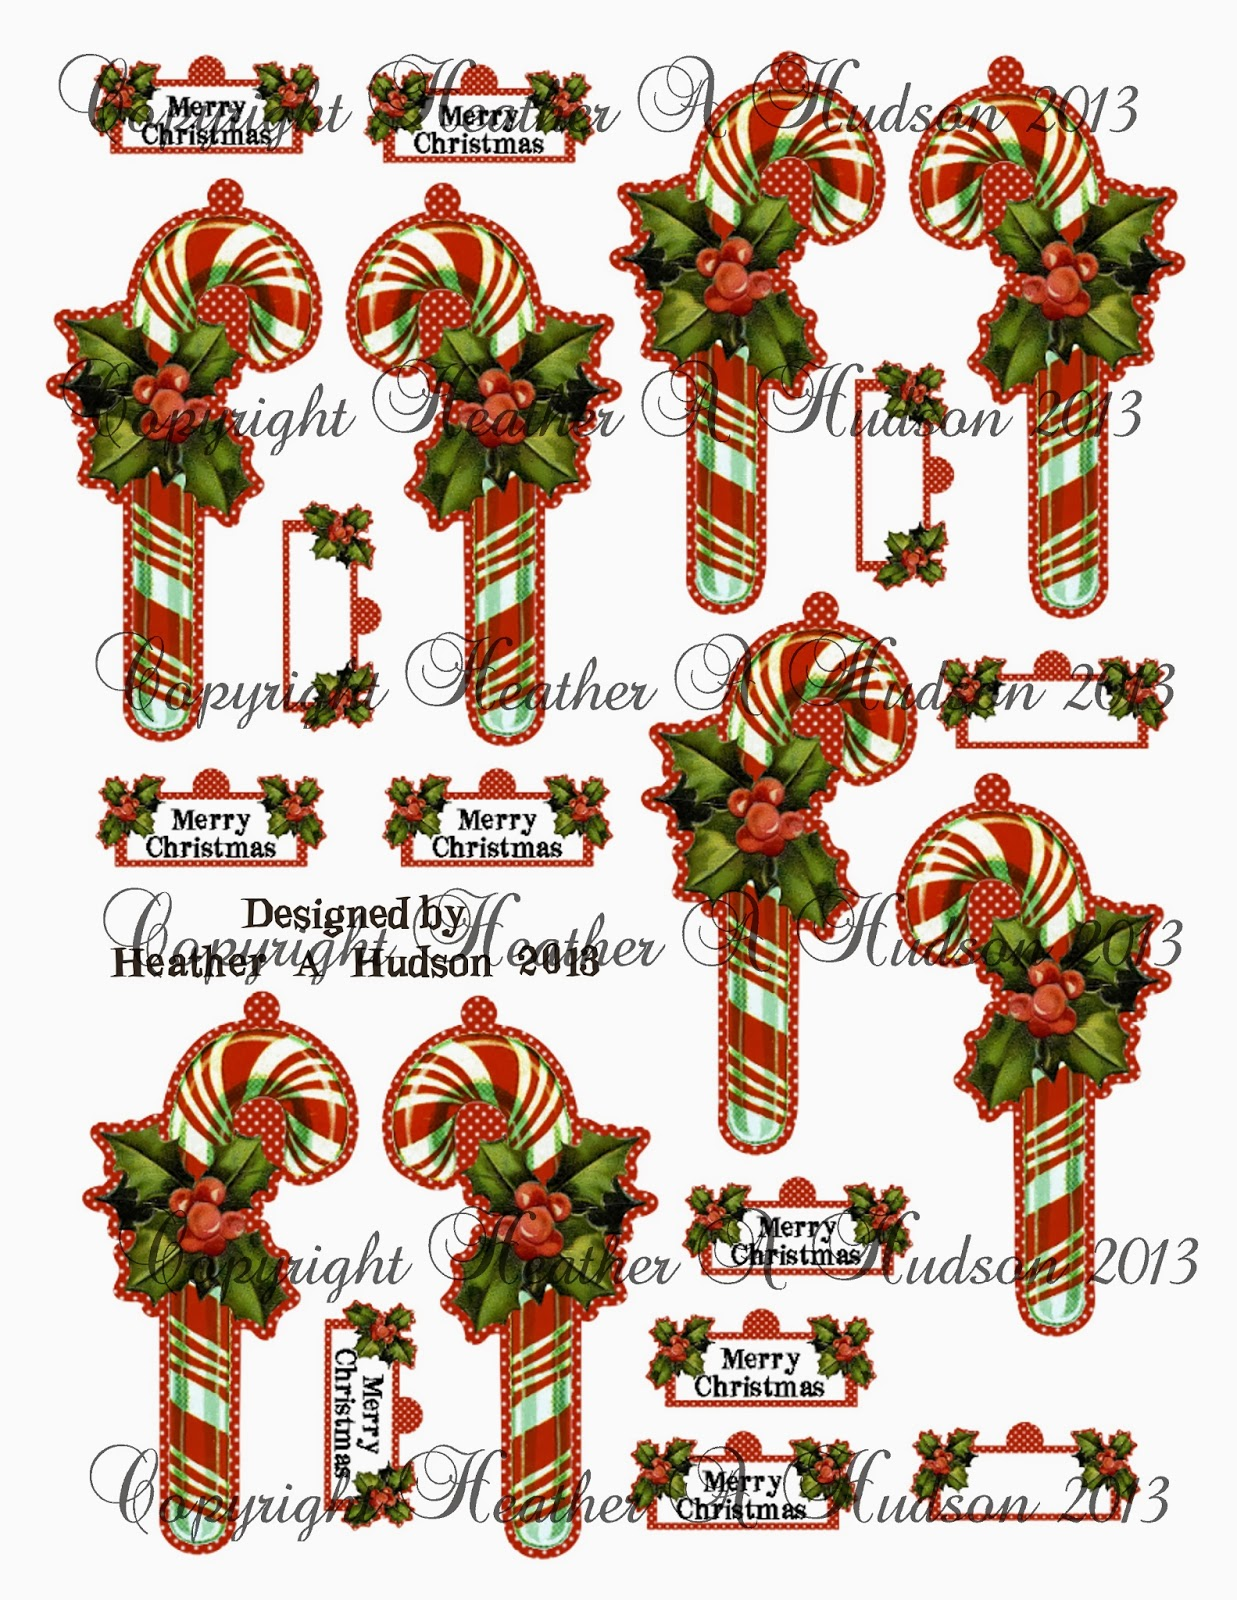 Large candy cane ornaments - Page Two Larger Candy Canes